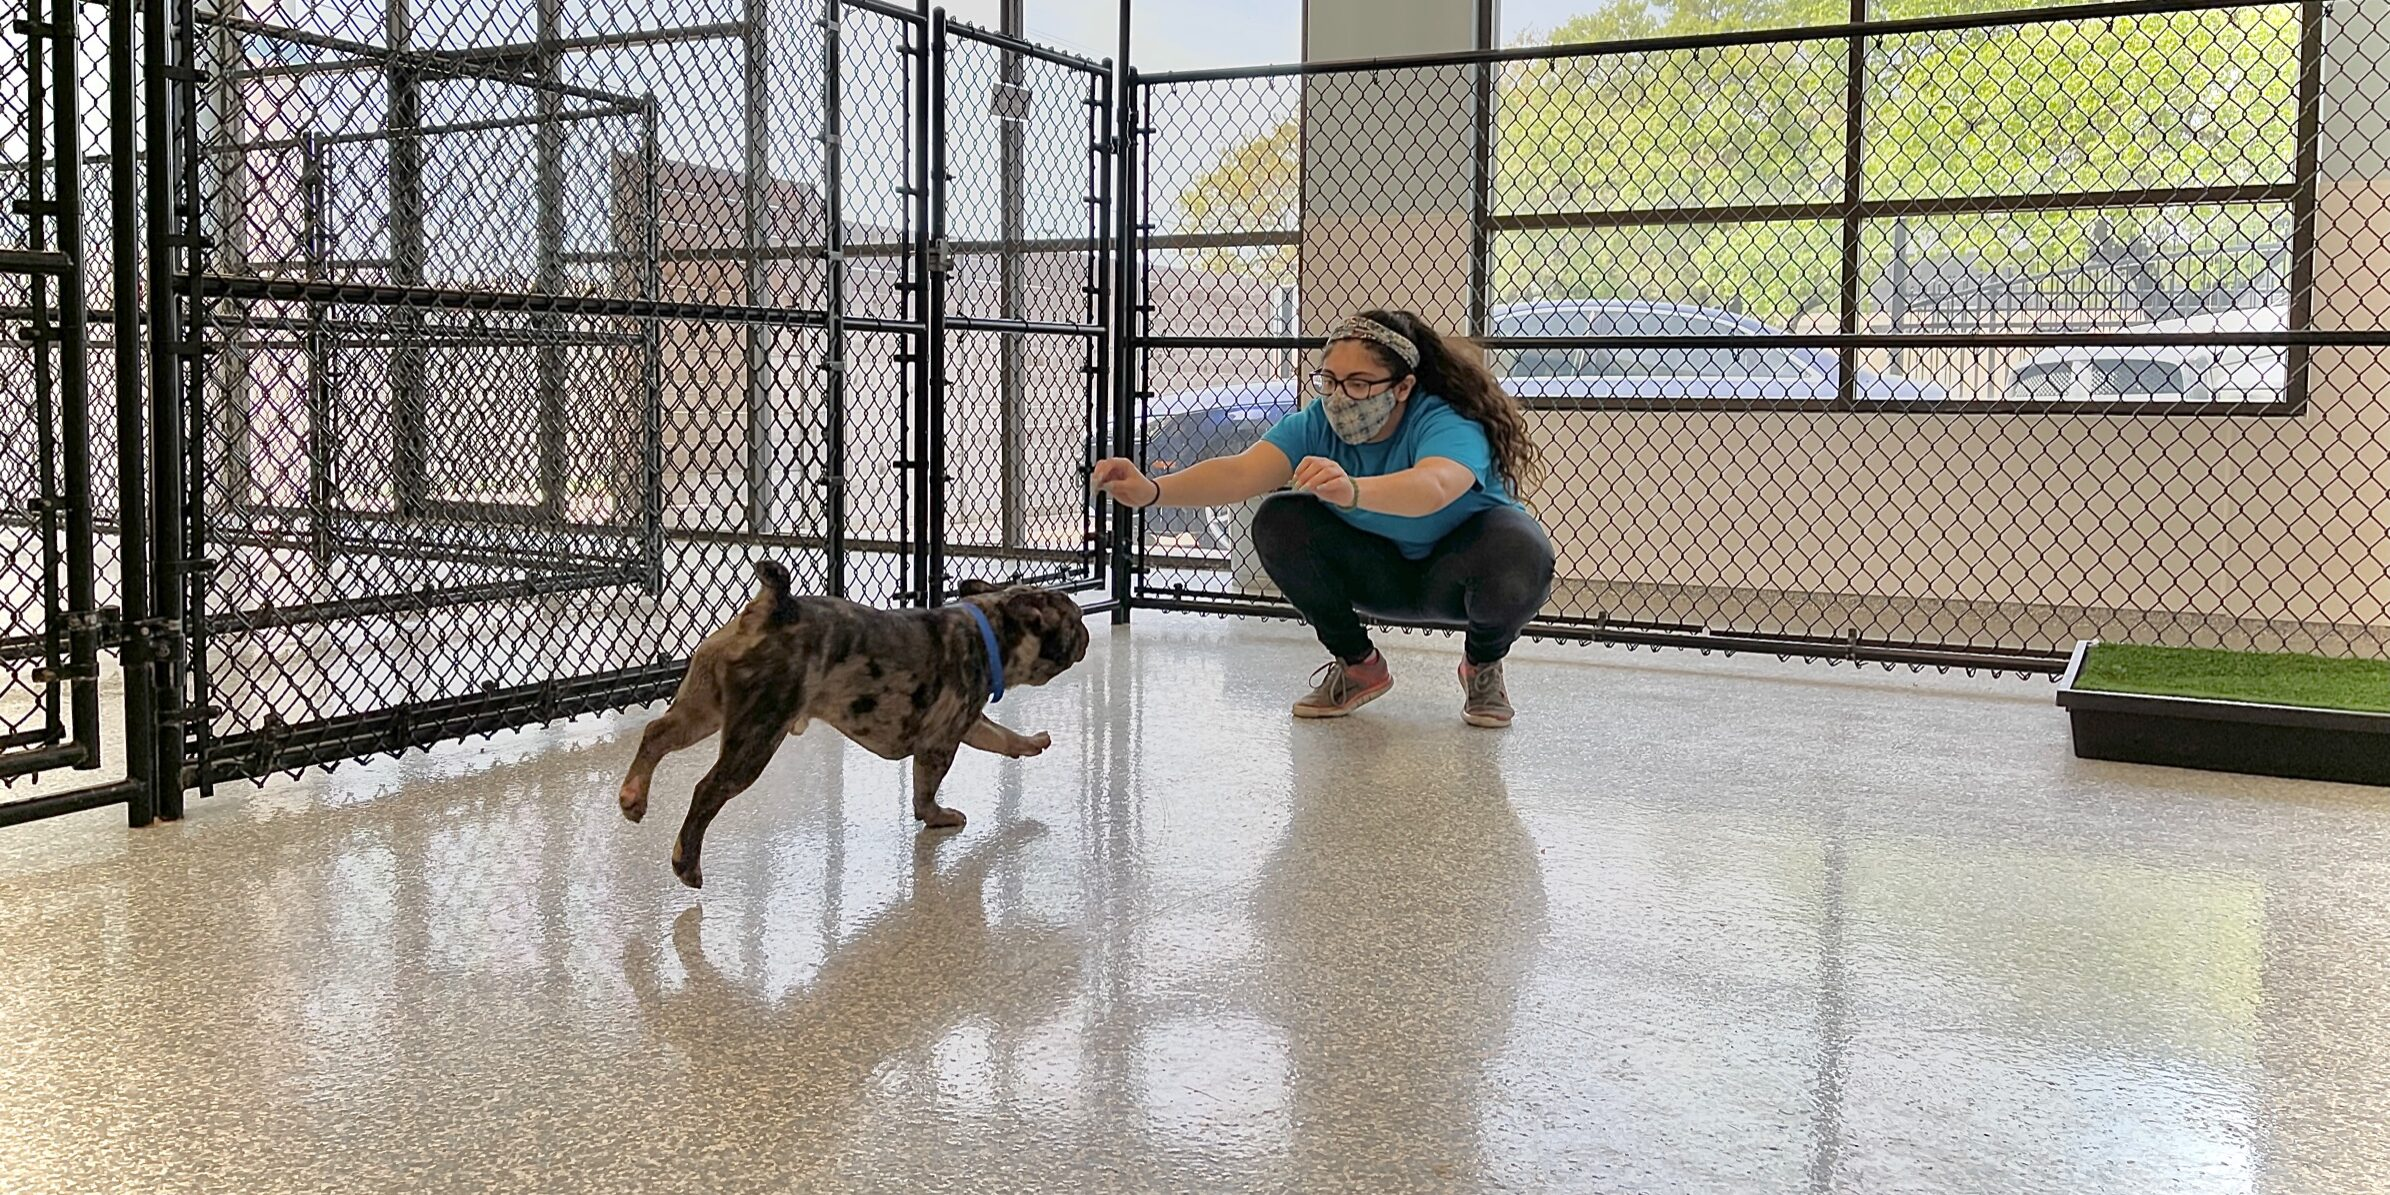 Playtime in Kennel